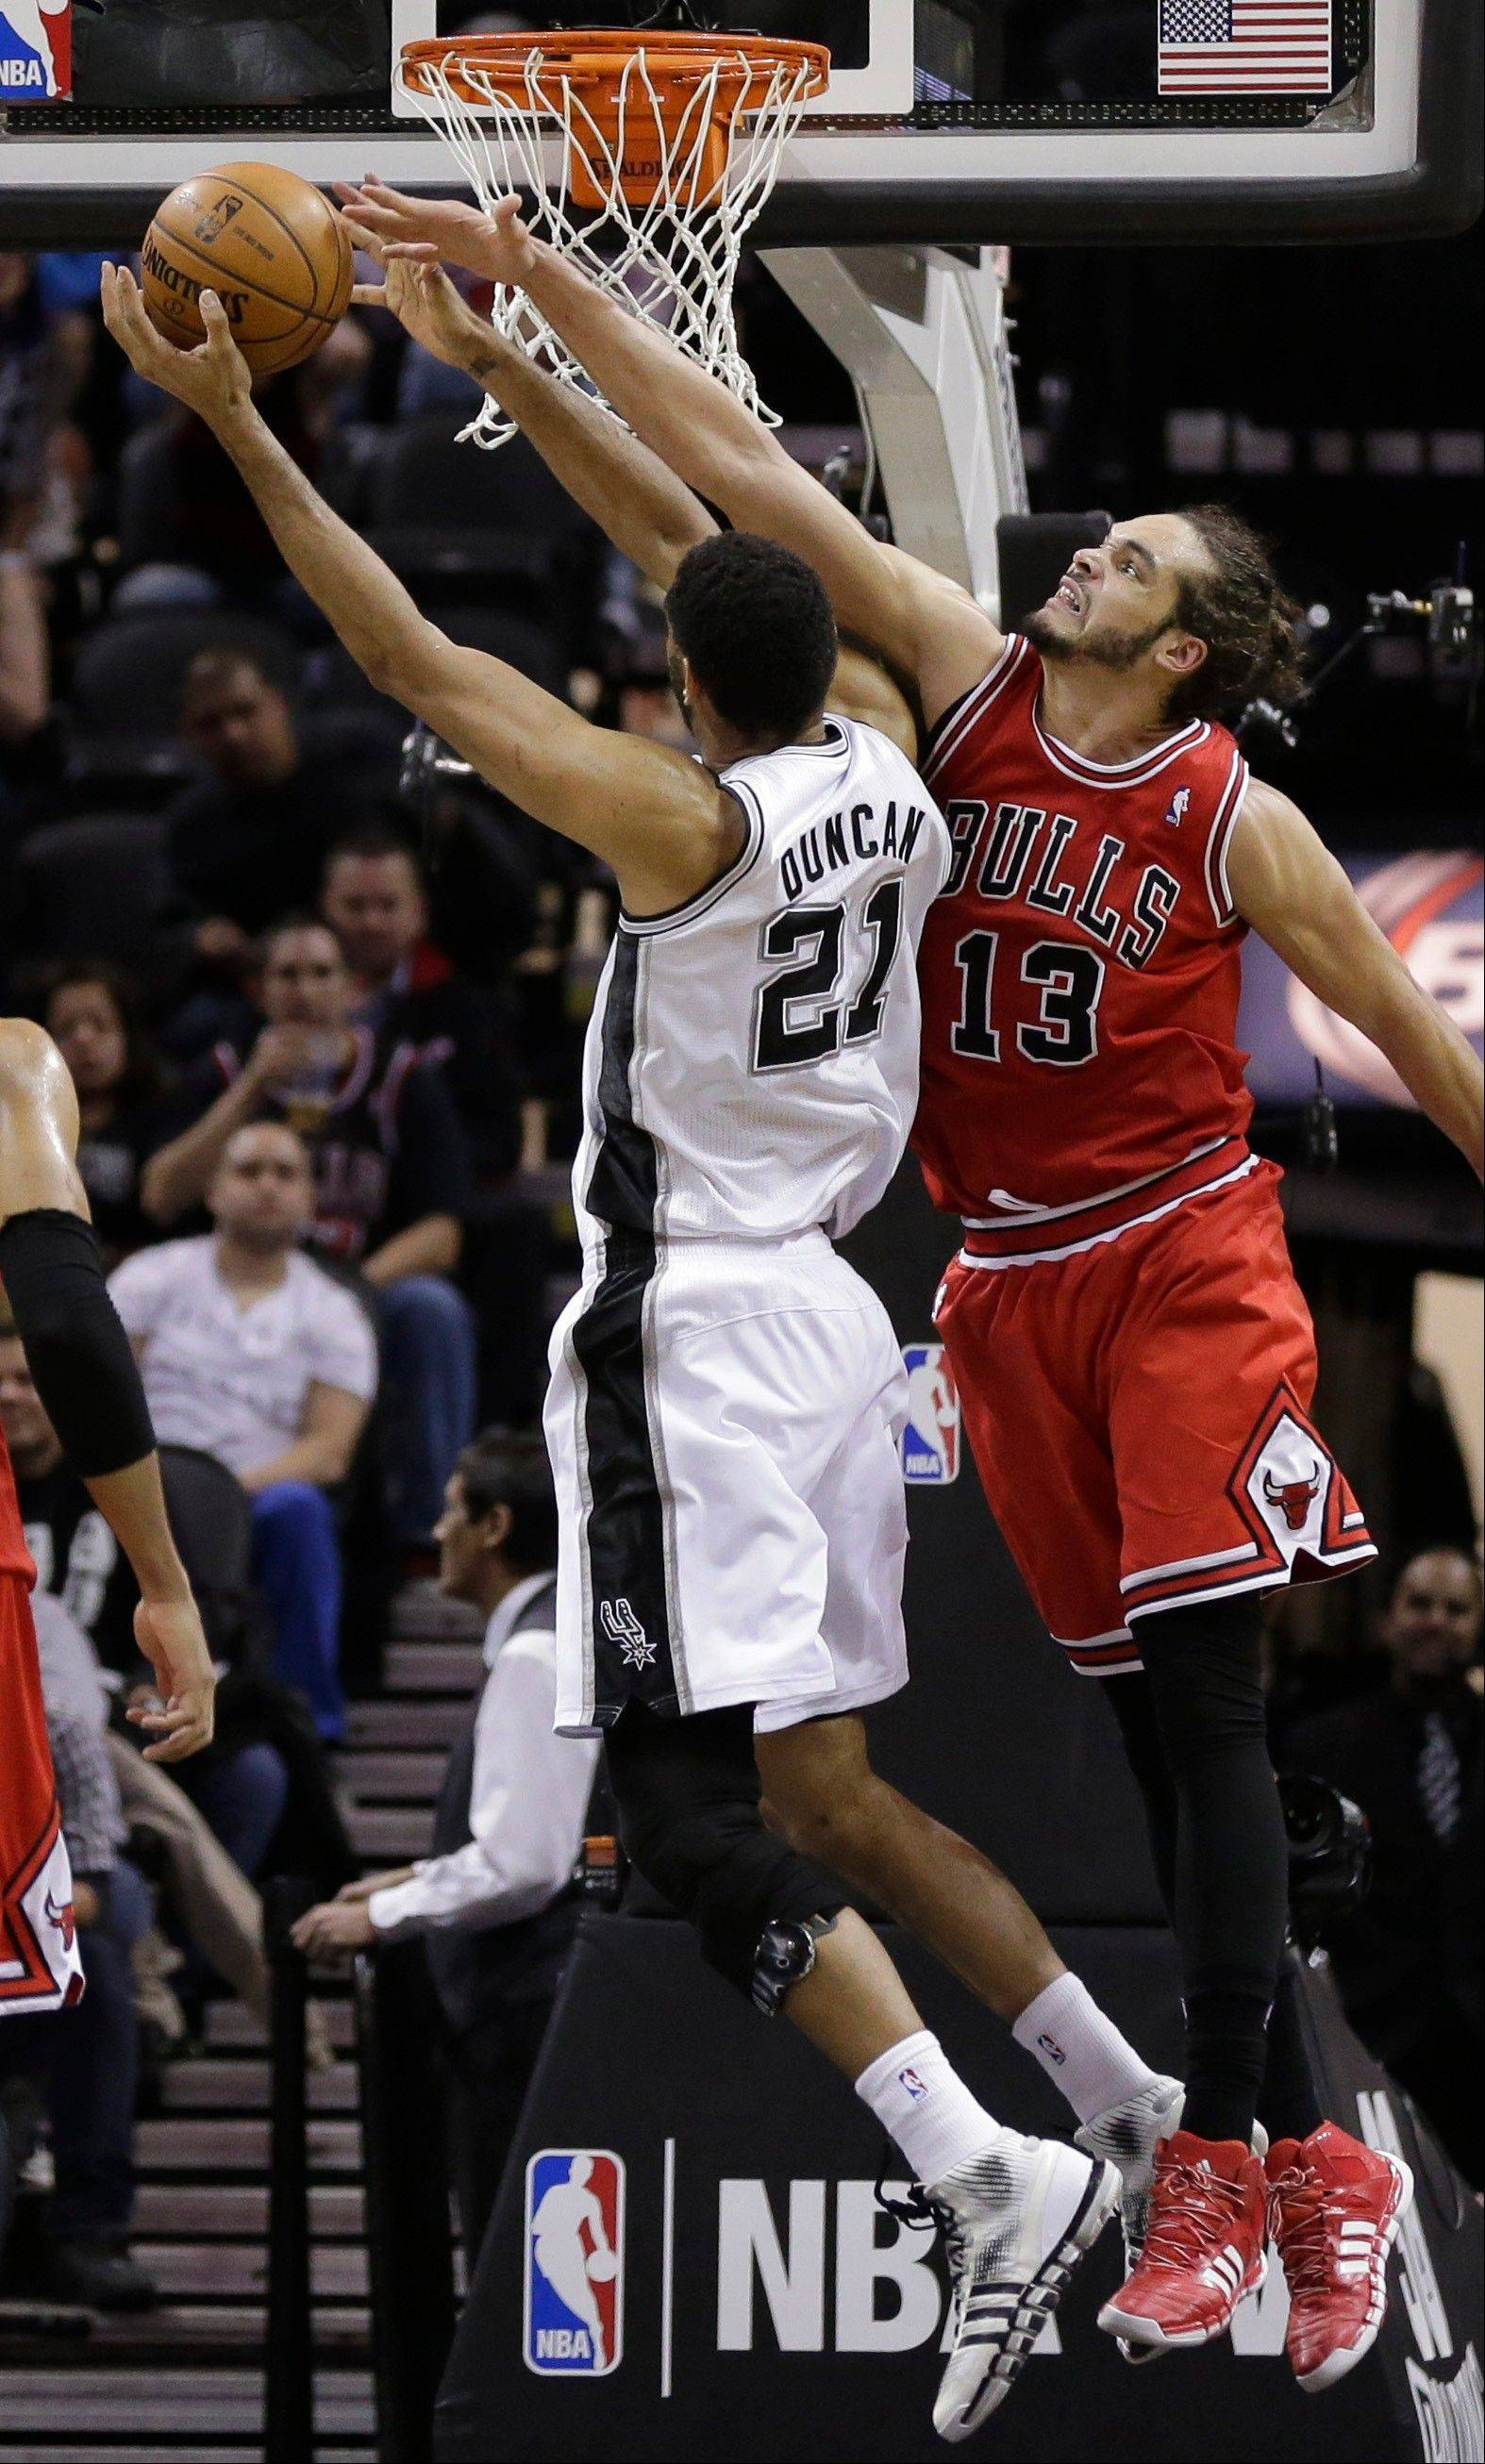 San Antonio Spurs' Tim Duncan (21) goes to the basket against Chicago Bulls' Joakim Noah (13) during the second half of an NBA basketball game, Wednesday, Jan. 29, 2014, in San Antonio. Chicago won 96-86.